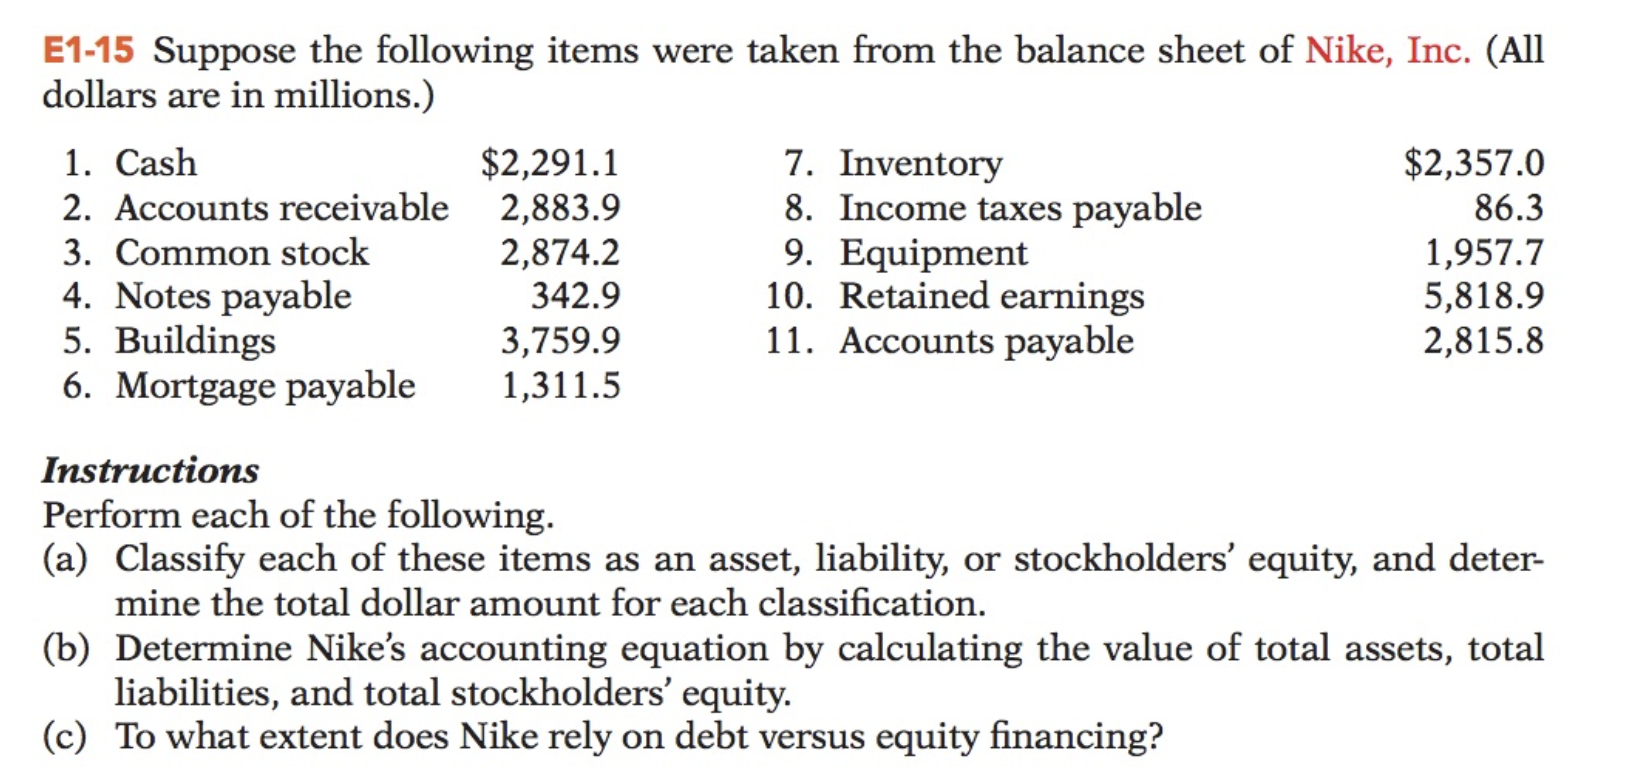 E1-15 Suppose the following items were taken from the balance sheet of Nike, Inc. (All dollars are in millions.) 7. Inventory 8. Income taxes payable 9. Equipment 10. Retained earnings 11. Accounts payable $2,357.0 $2,291.1 2. Accounts receivable 2,883.9 2,874.2 1. Cash 86.3 3. Common stock 1,957.7 5,818.9 2,815.8 4. Notes payable 5. Buildings 6. Mortgage payable 342.9 3,759.9 1,311.5 Instructions Perform each of the following. (a) Classify each of these items as an asset, liability, or stockholders' equity, and deter- mine the total dollar amount for each classification. (b) Determine Nike's accounting equation by calculating the value of total assets, total liabilities, and total stockholders' equity. (c) To what extent does Nike rely on debt versus equity financing?